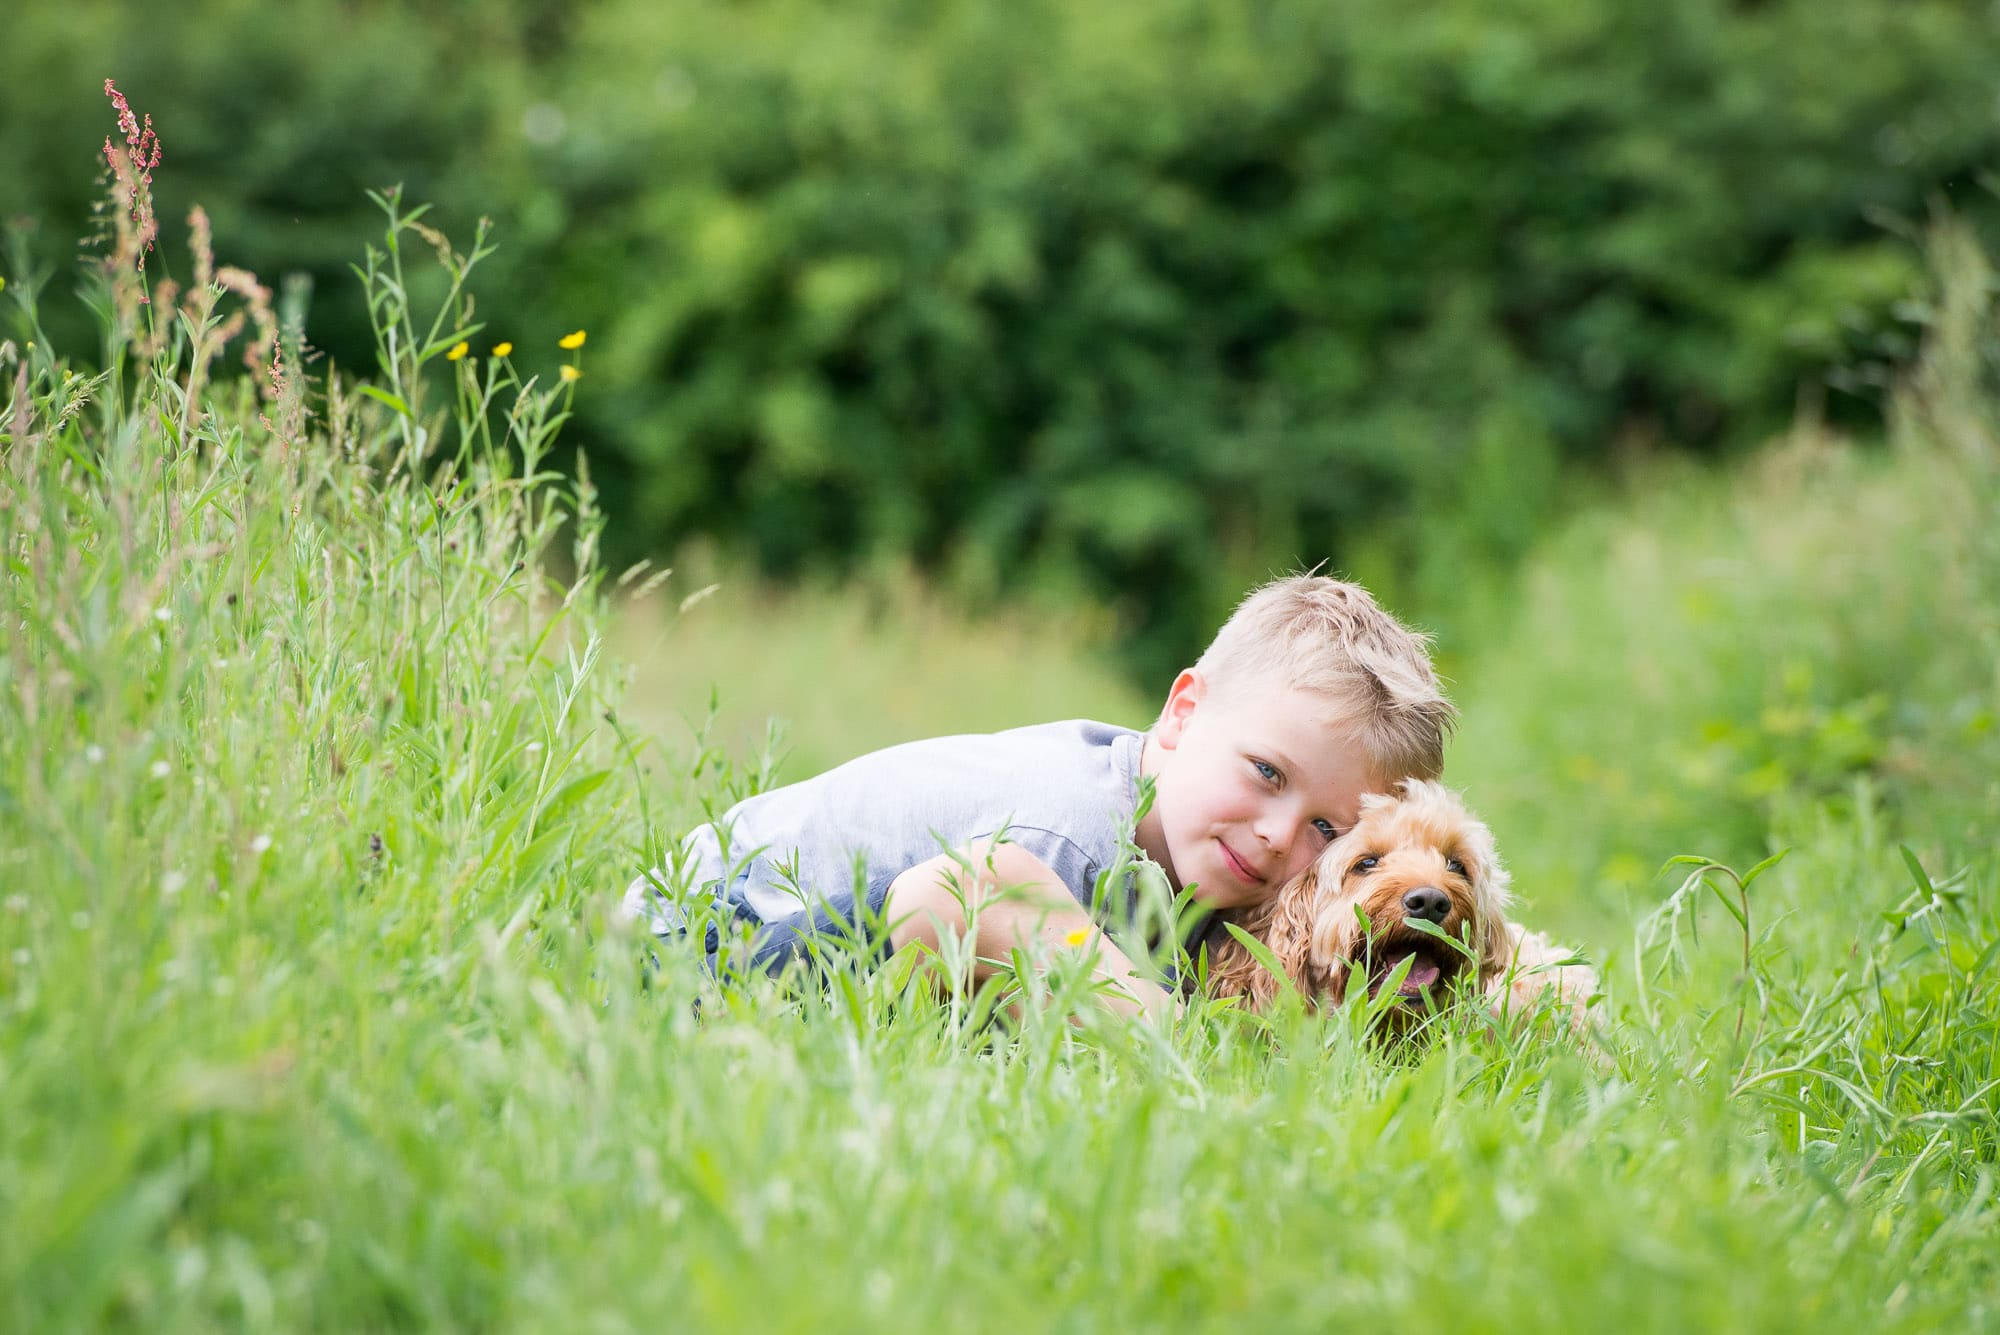 Young boy laying on the grass during his family photoshoot with his dog